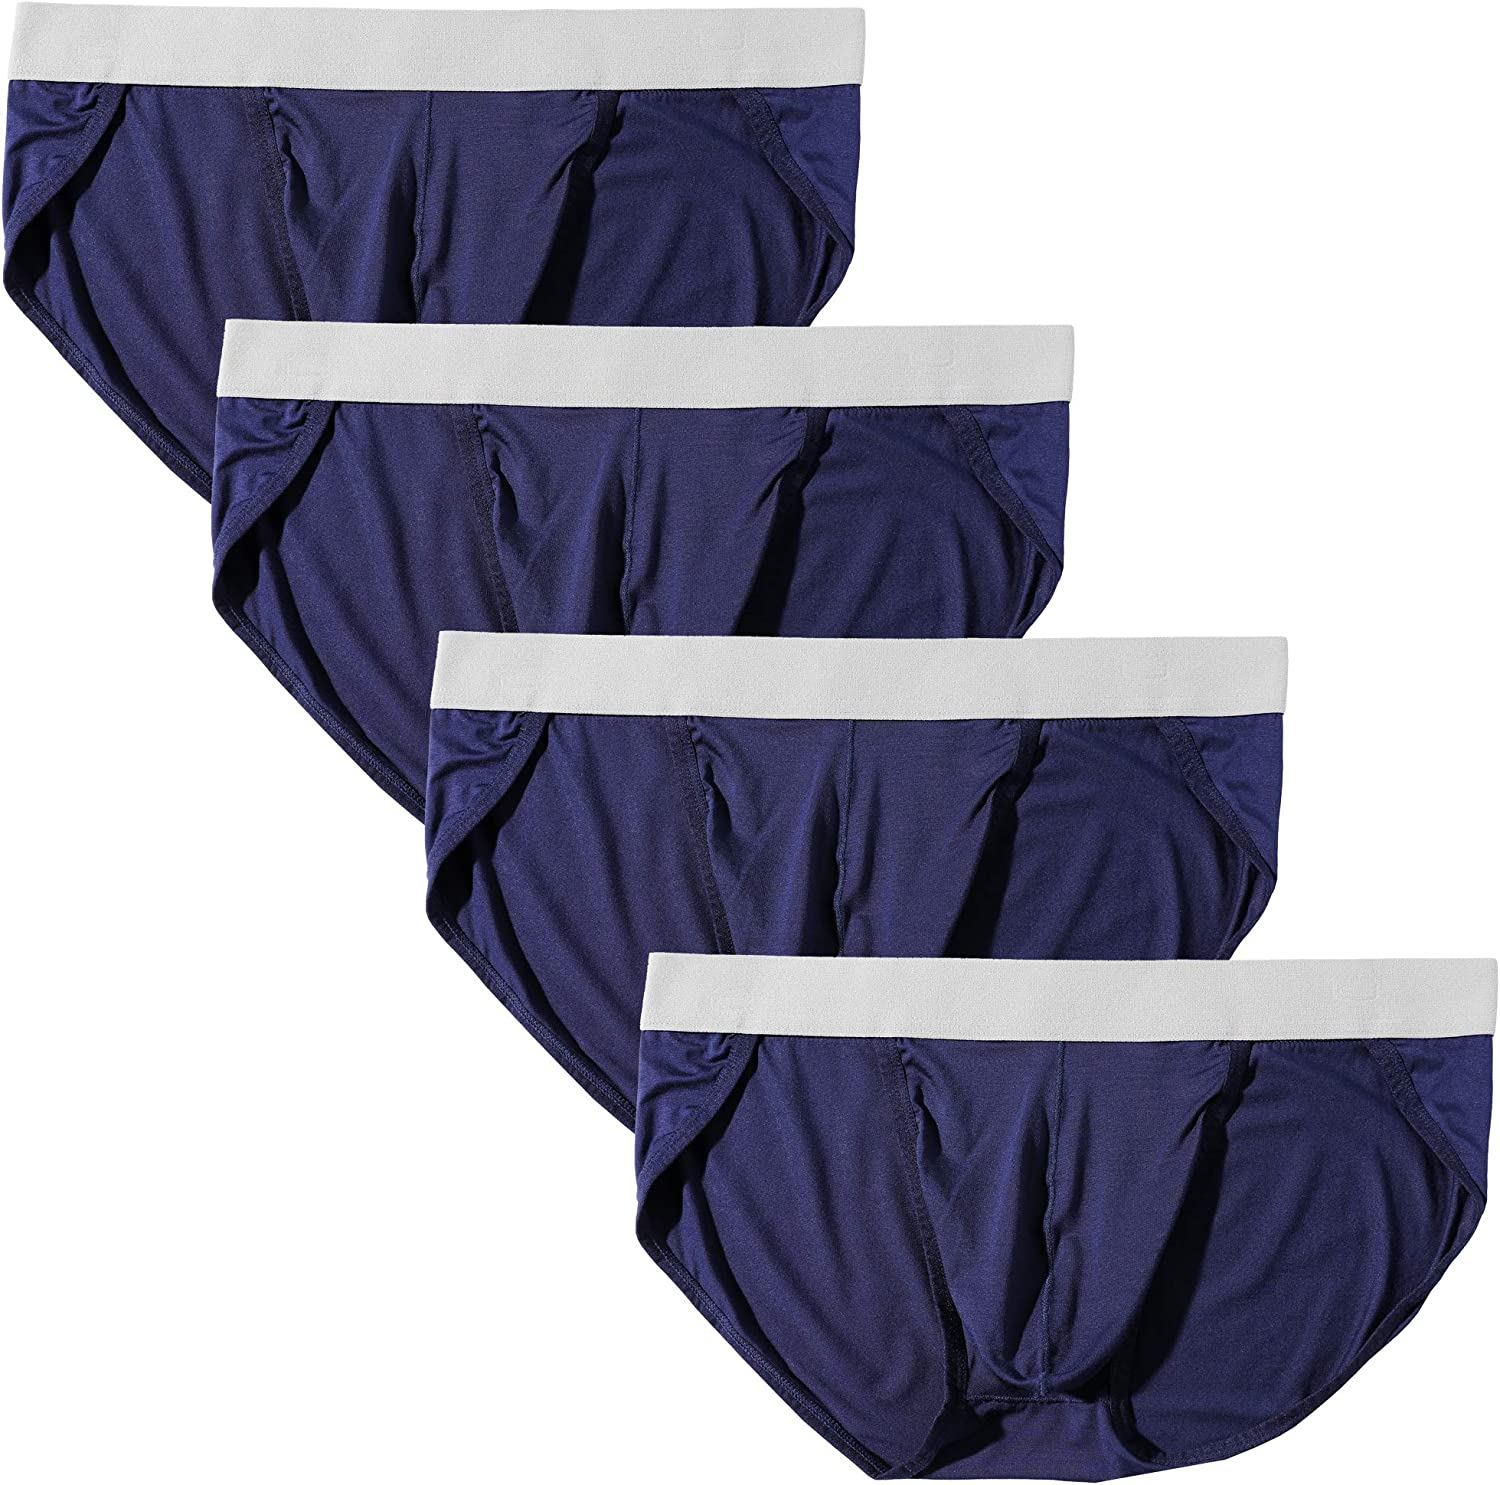 WINDAY Men's Underwear Stretch Low Rise Multipack Bamboo All items free shipping Classic supreme